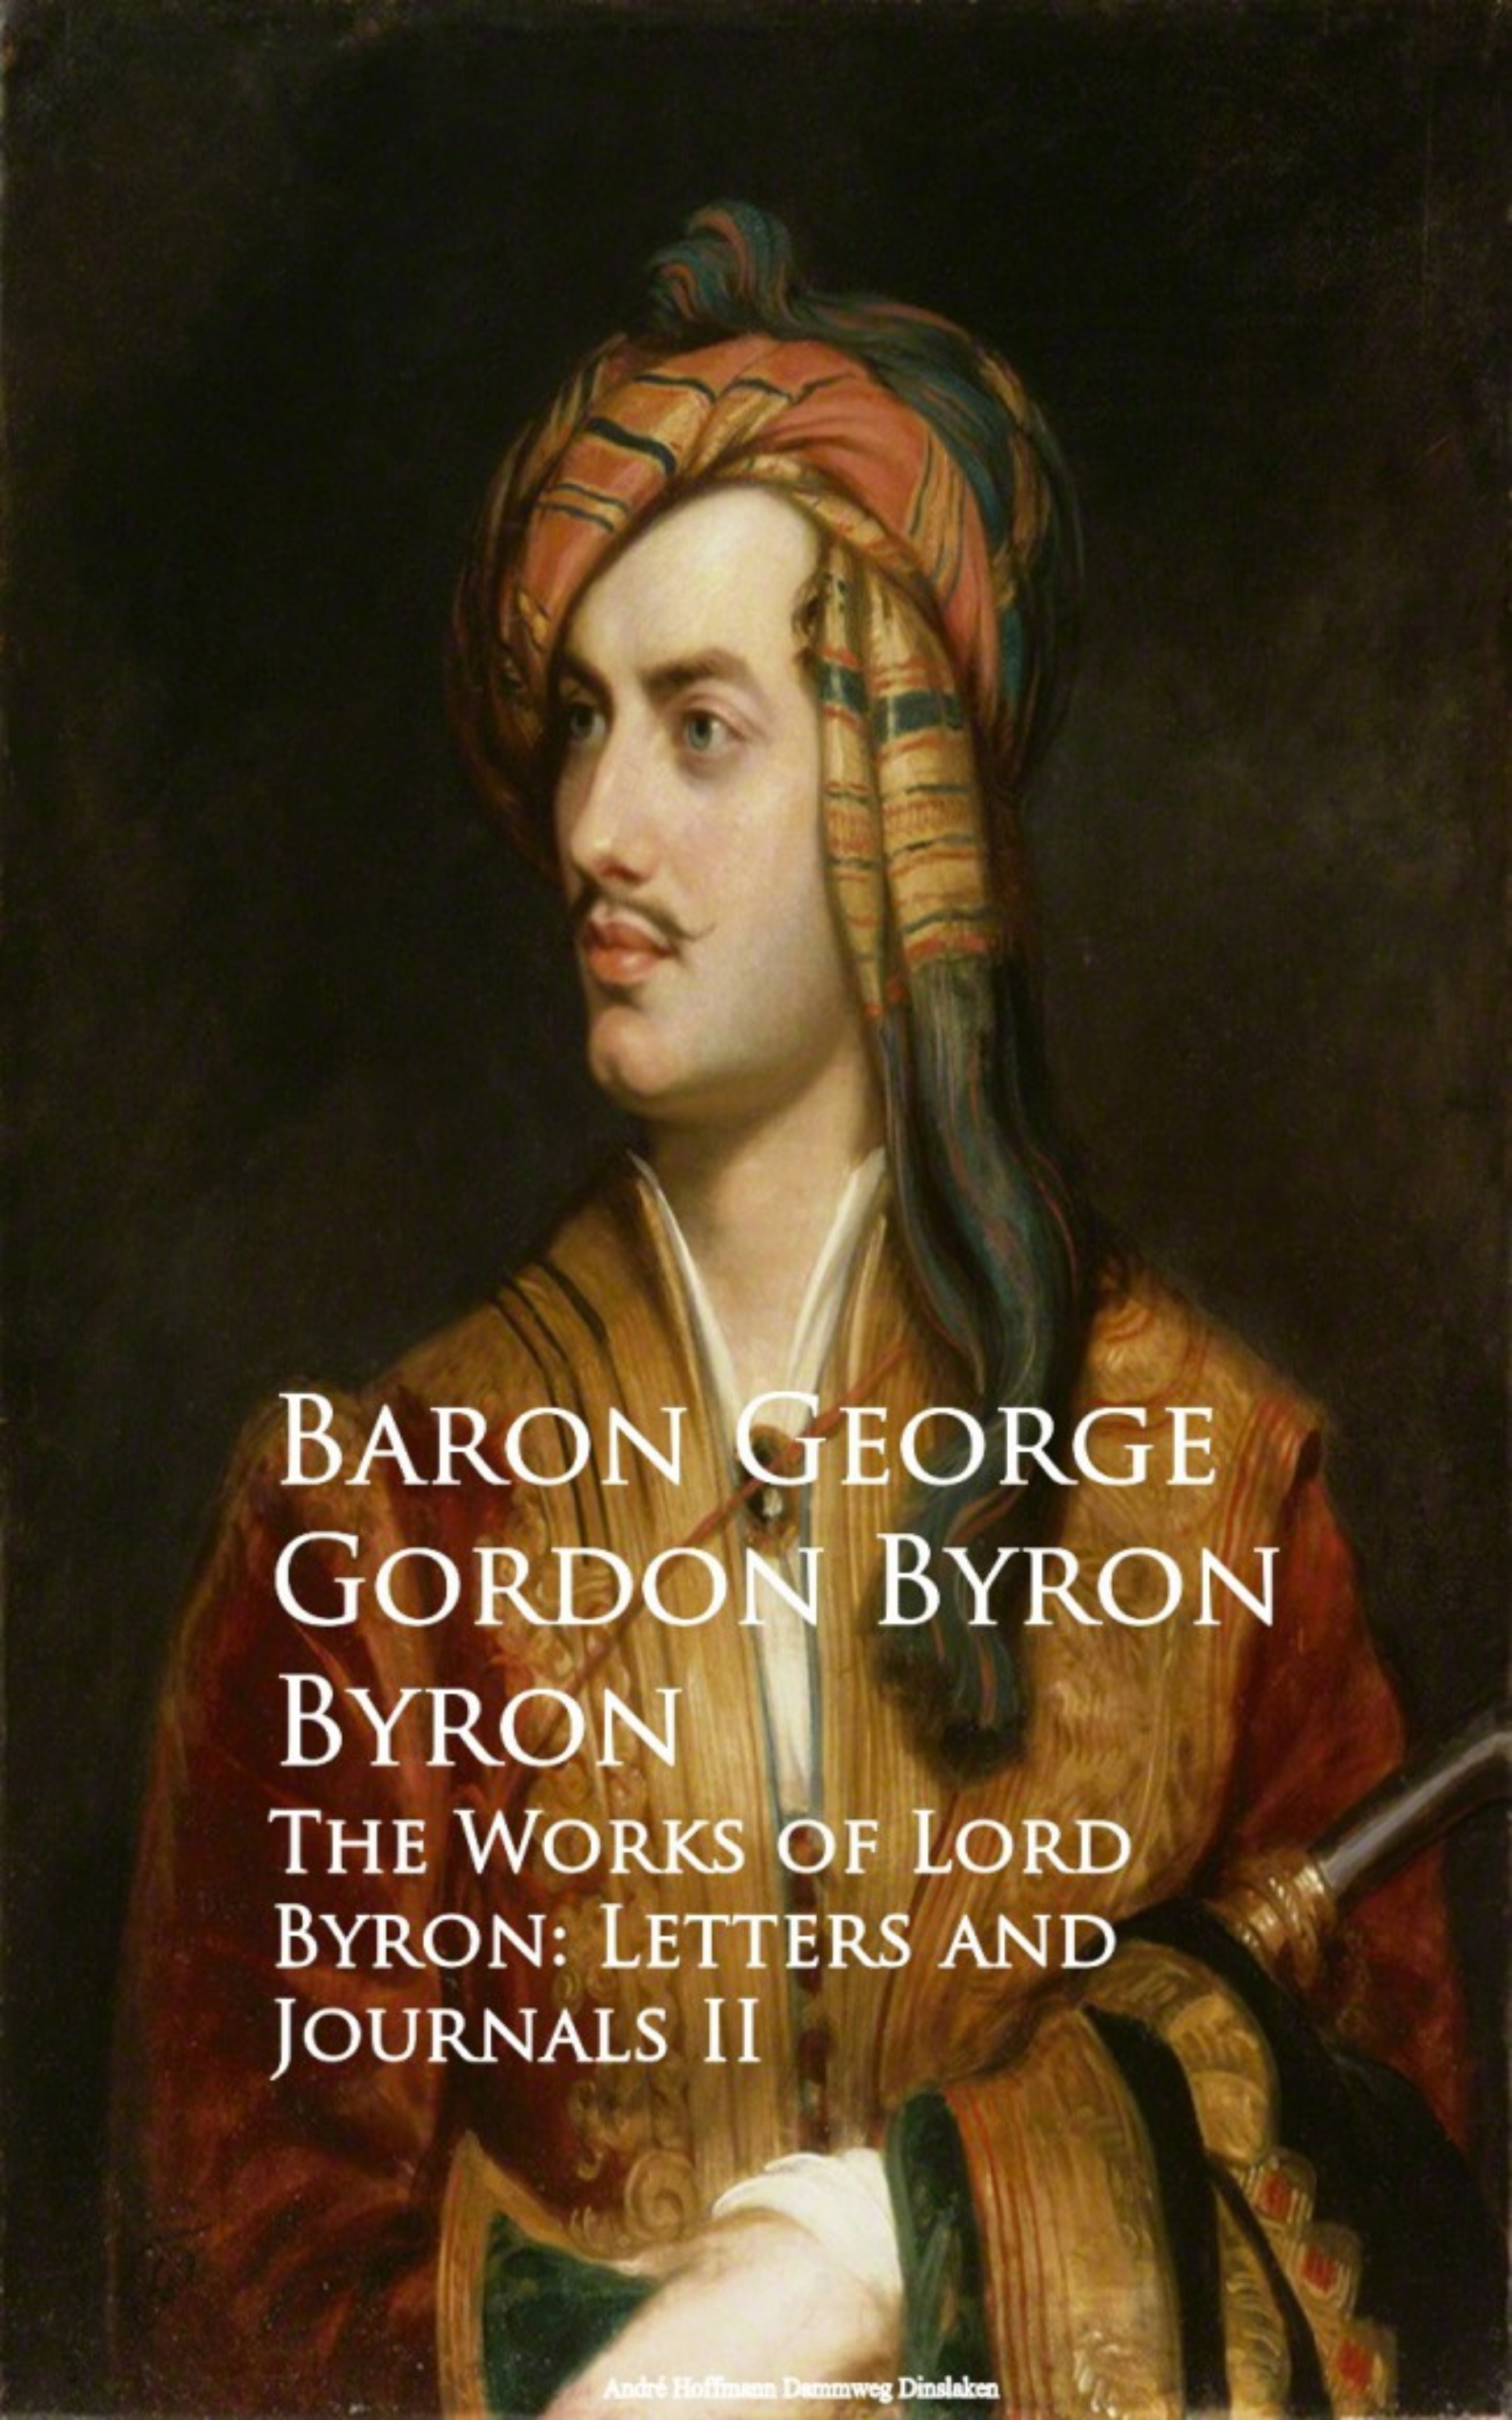 Baron George Gordon Byron Byron The Works of Lord Byron: Letters and Journals II george gordon byron childe harold s pilgrimage canto the third